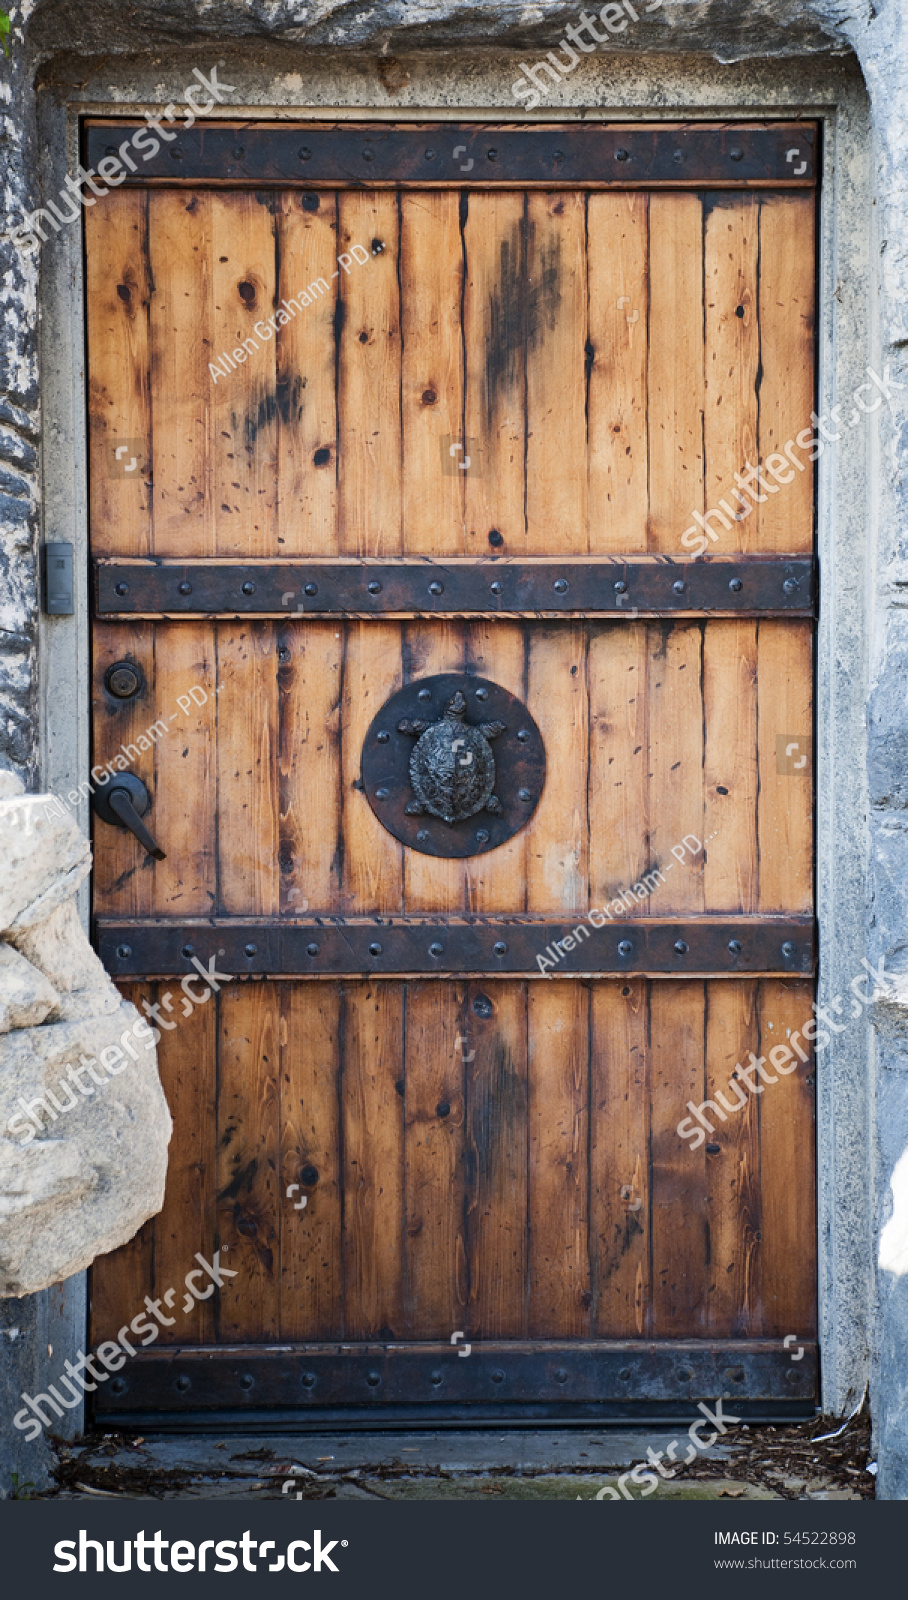 Turtle Door Knocker Old Reinforced Wood Door Turtle Door Stock Photo Edit Now